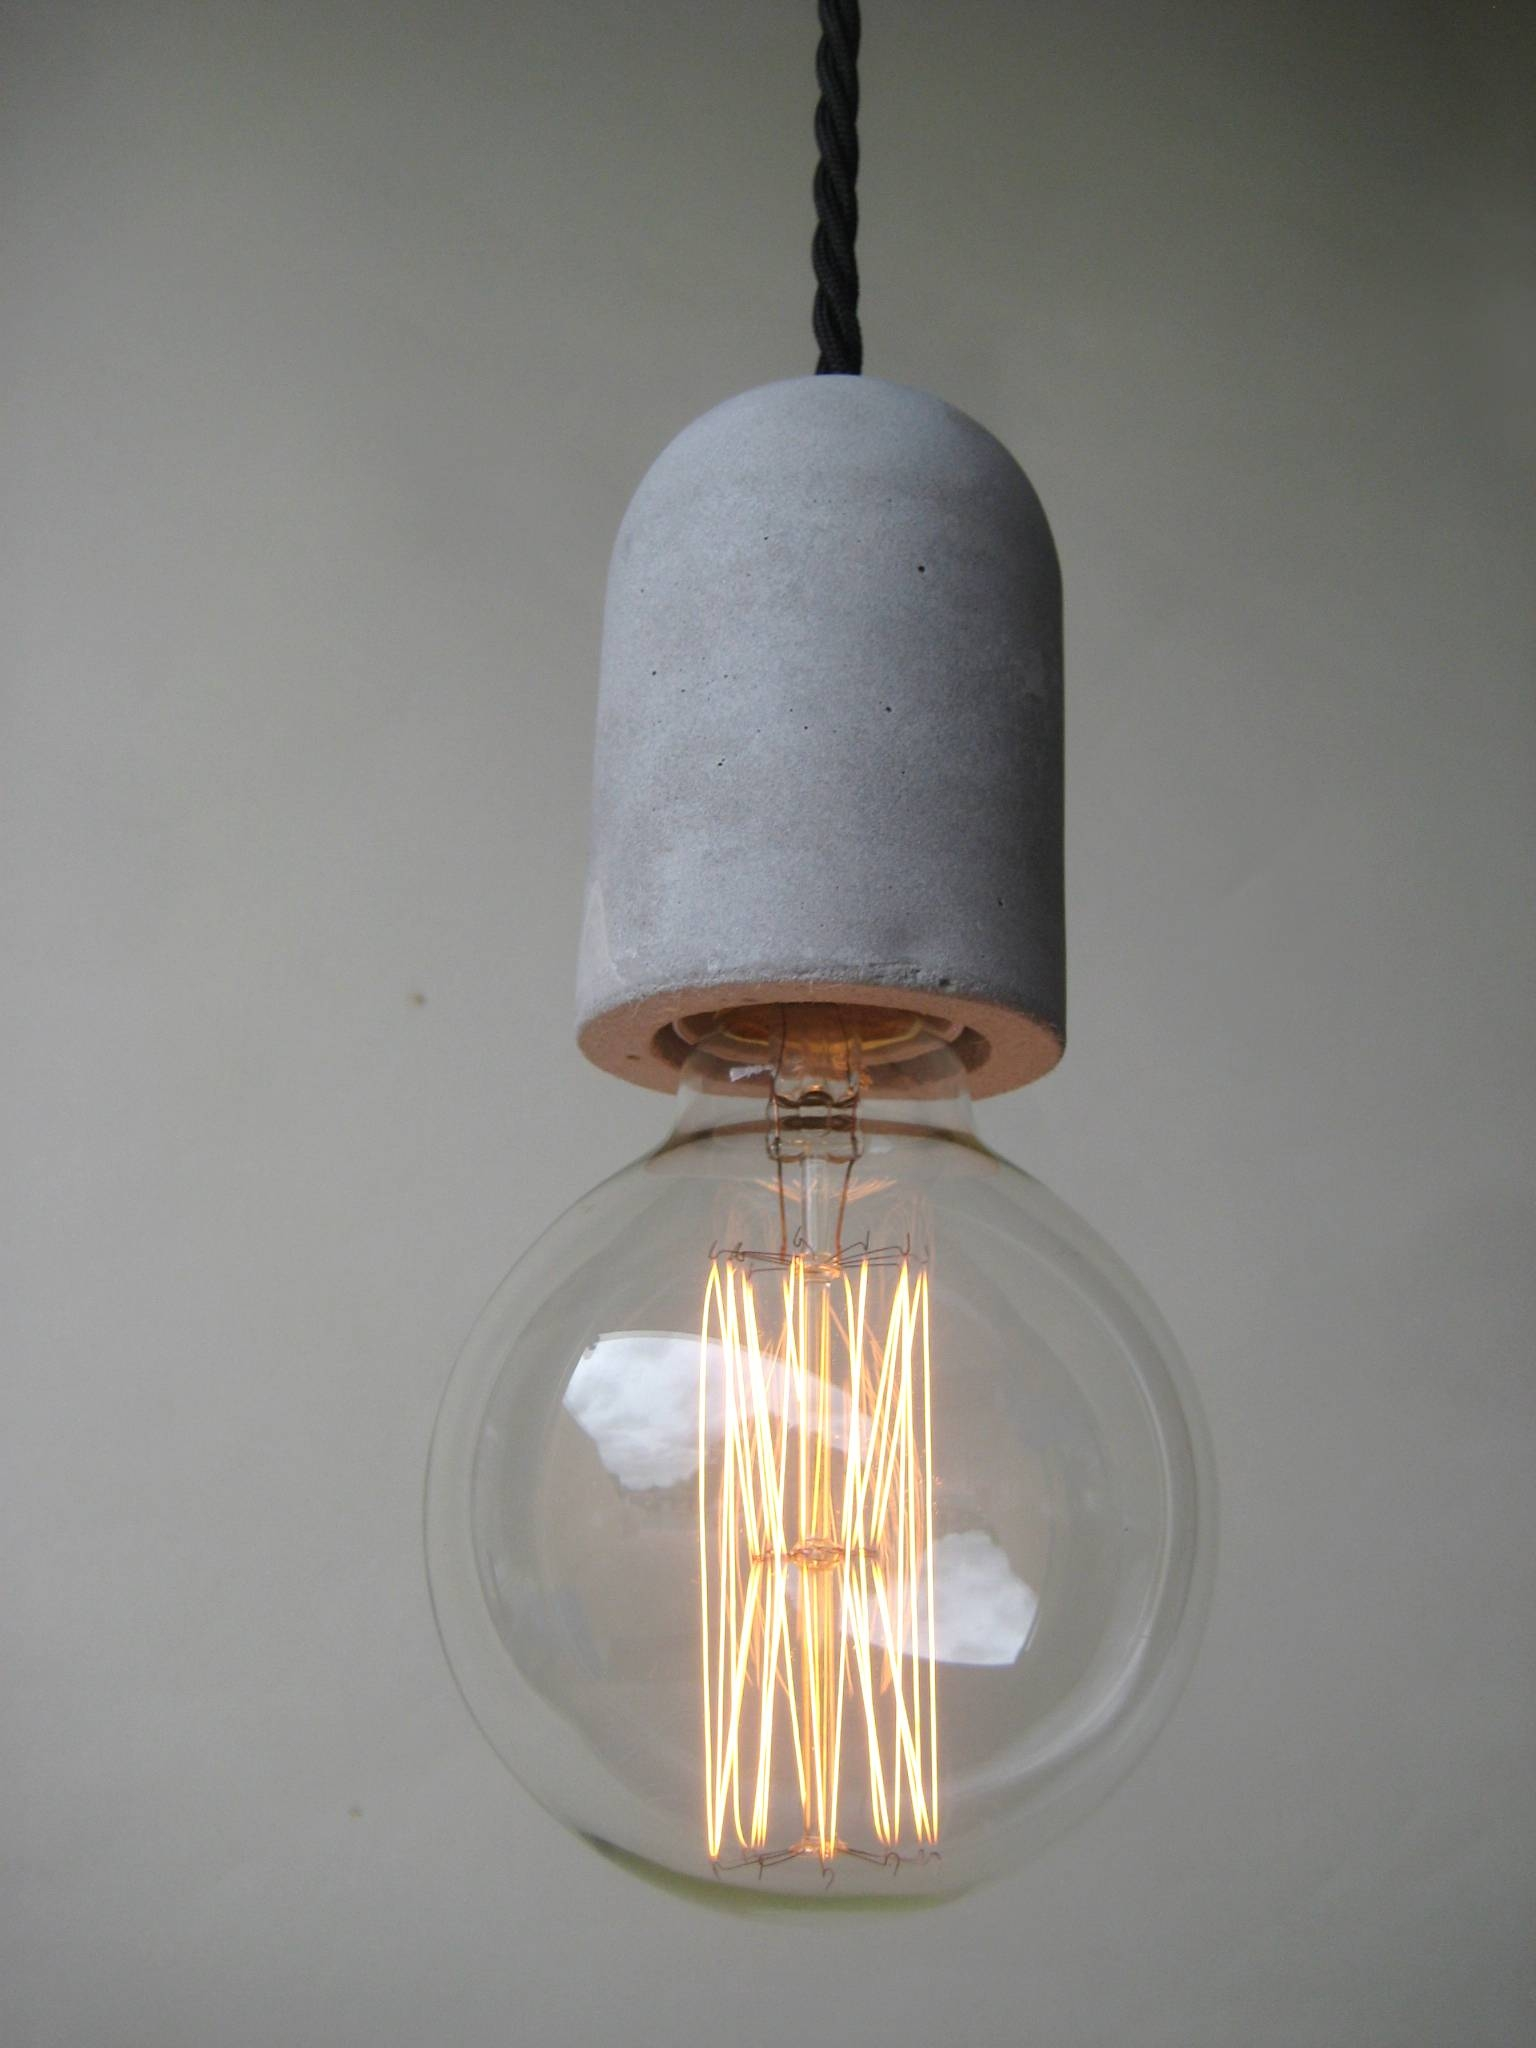 Stunning Pendant Light Plug In 86 About Remodel Rustic Mini within Plugin Pendant Lights (Image 15 of 15)